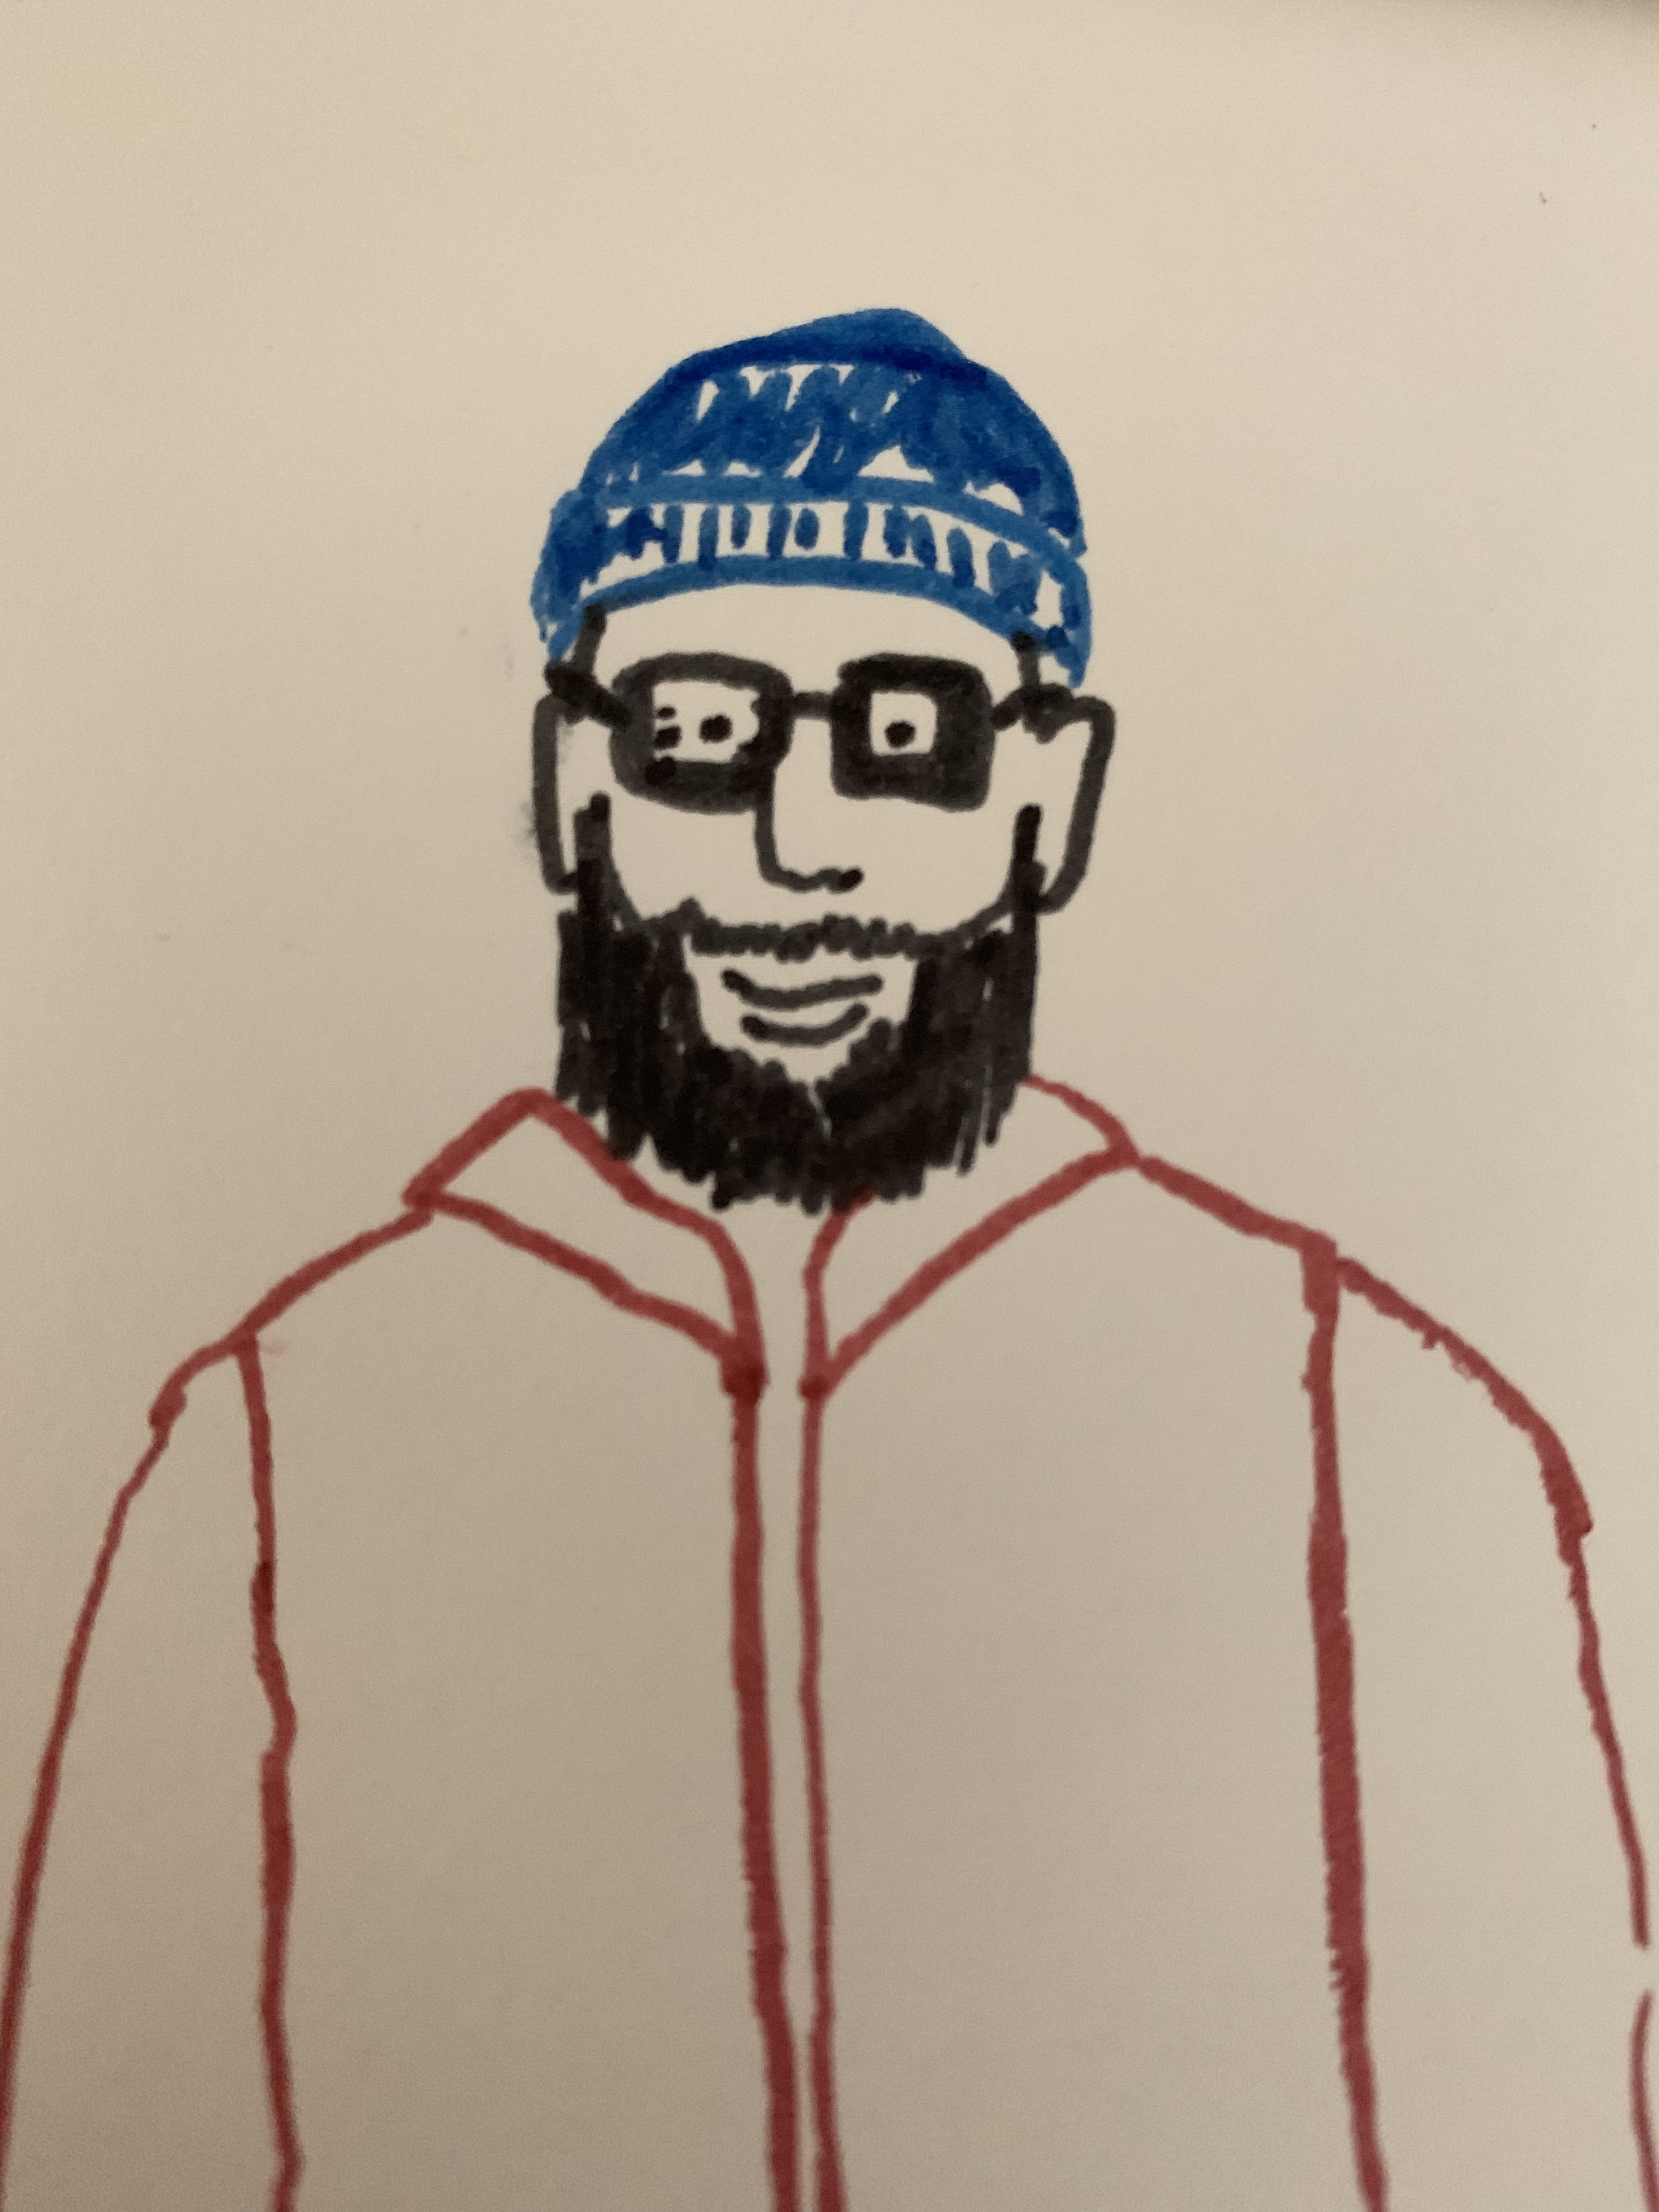 A drawing of a bearded person wearing a blue beanie.